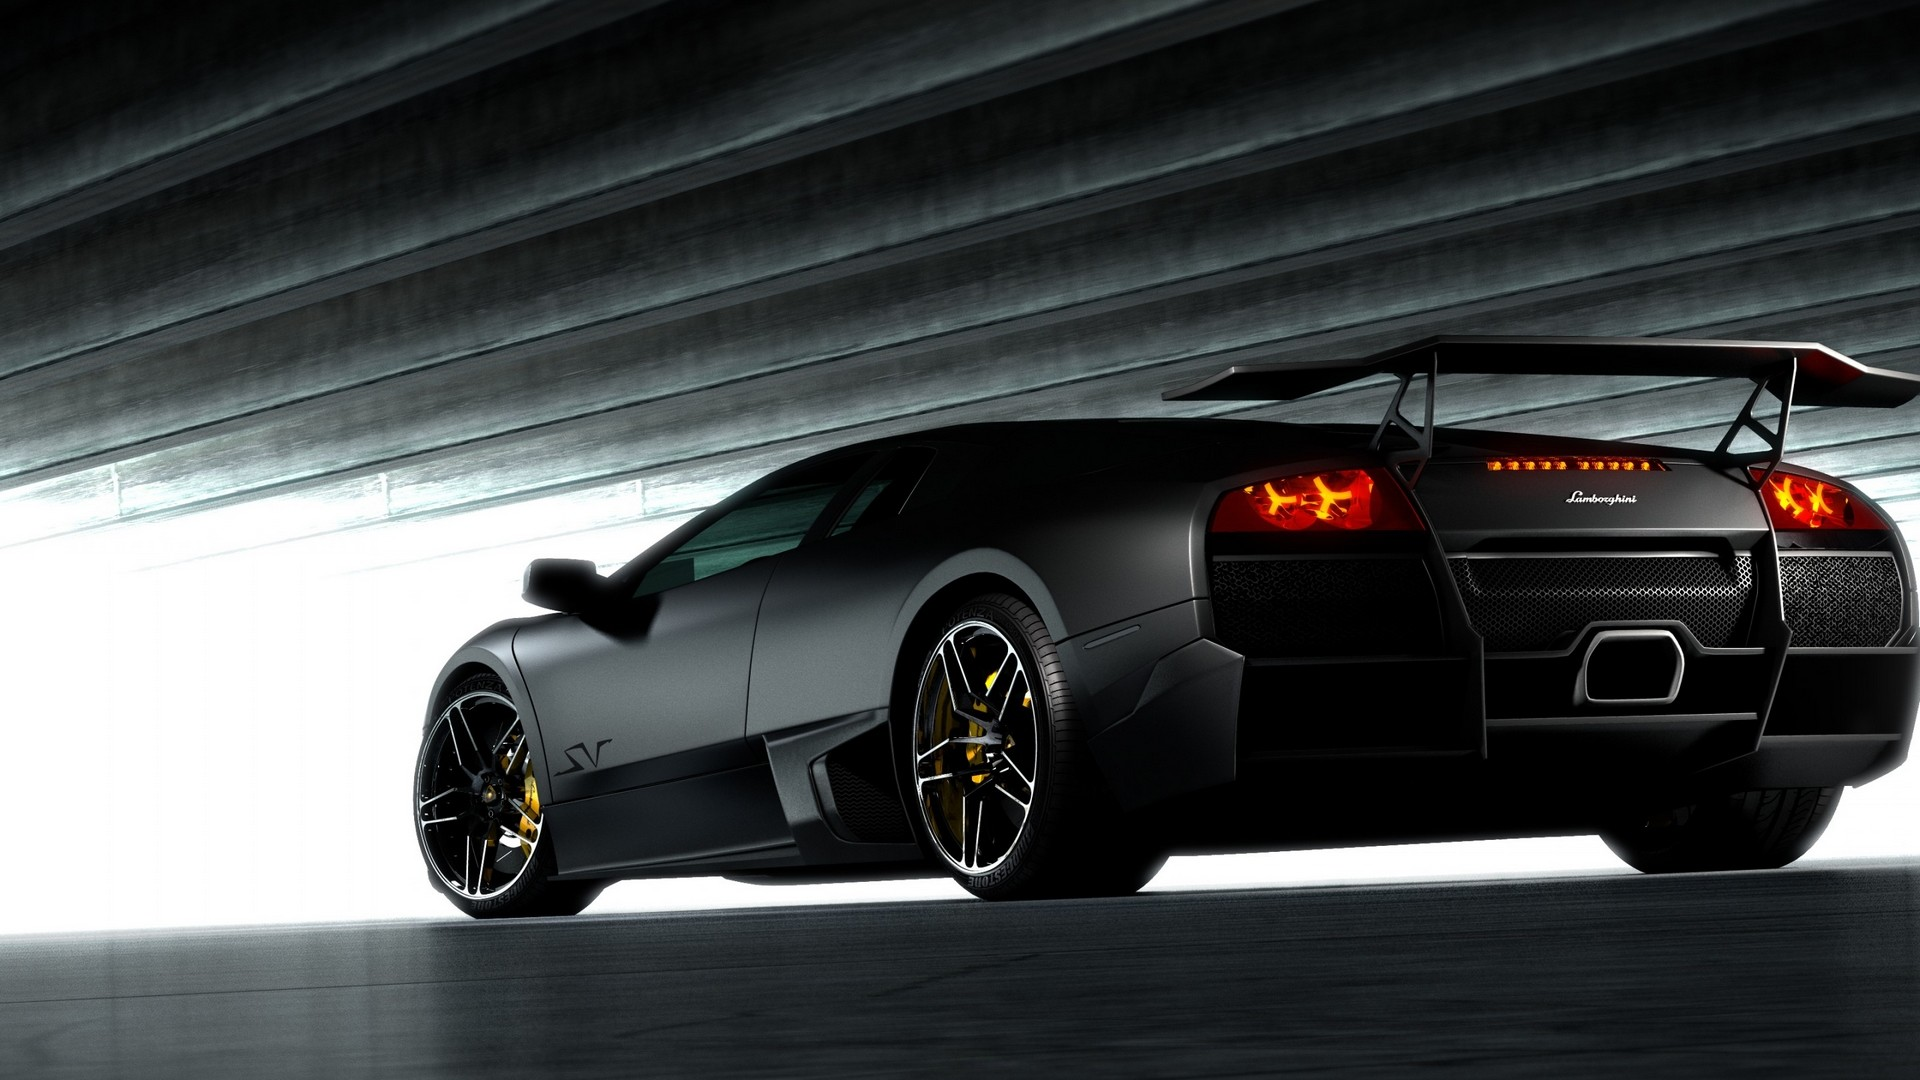 1920x1080 Lamborghini Gallardo Black Wallpaper Lamborghini Cars (87 Wallpapers) – HD  Wallpapers